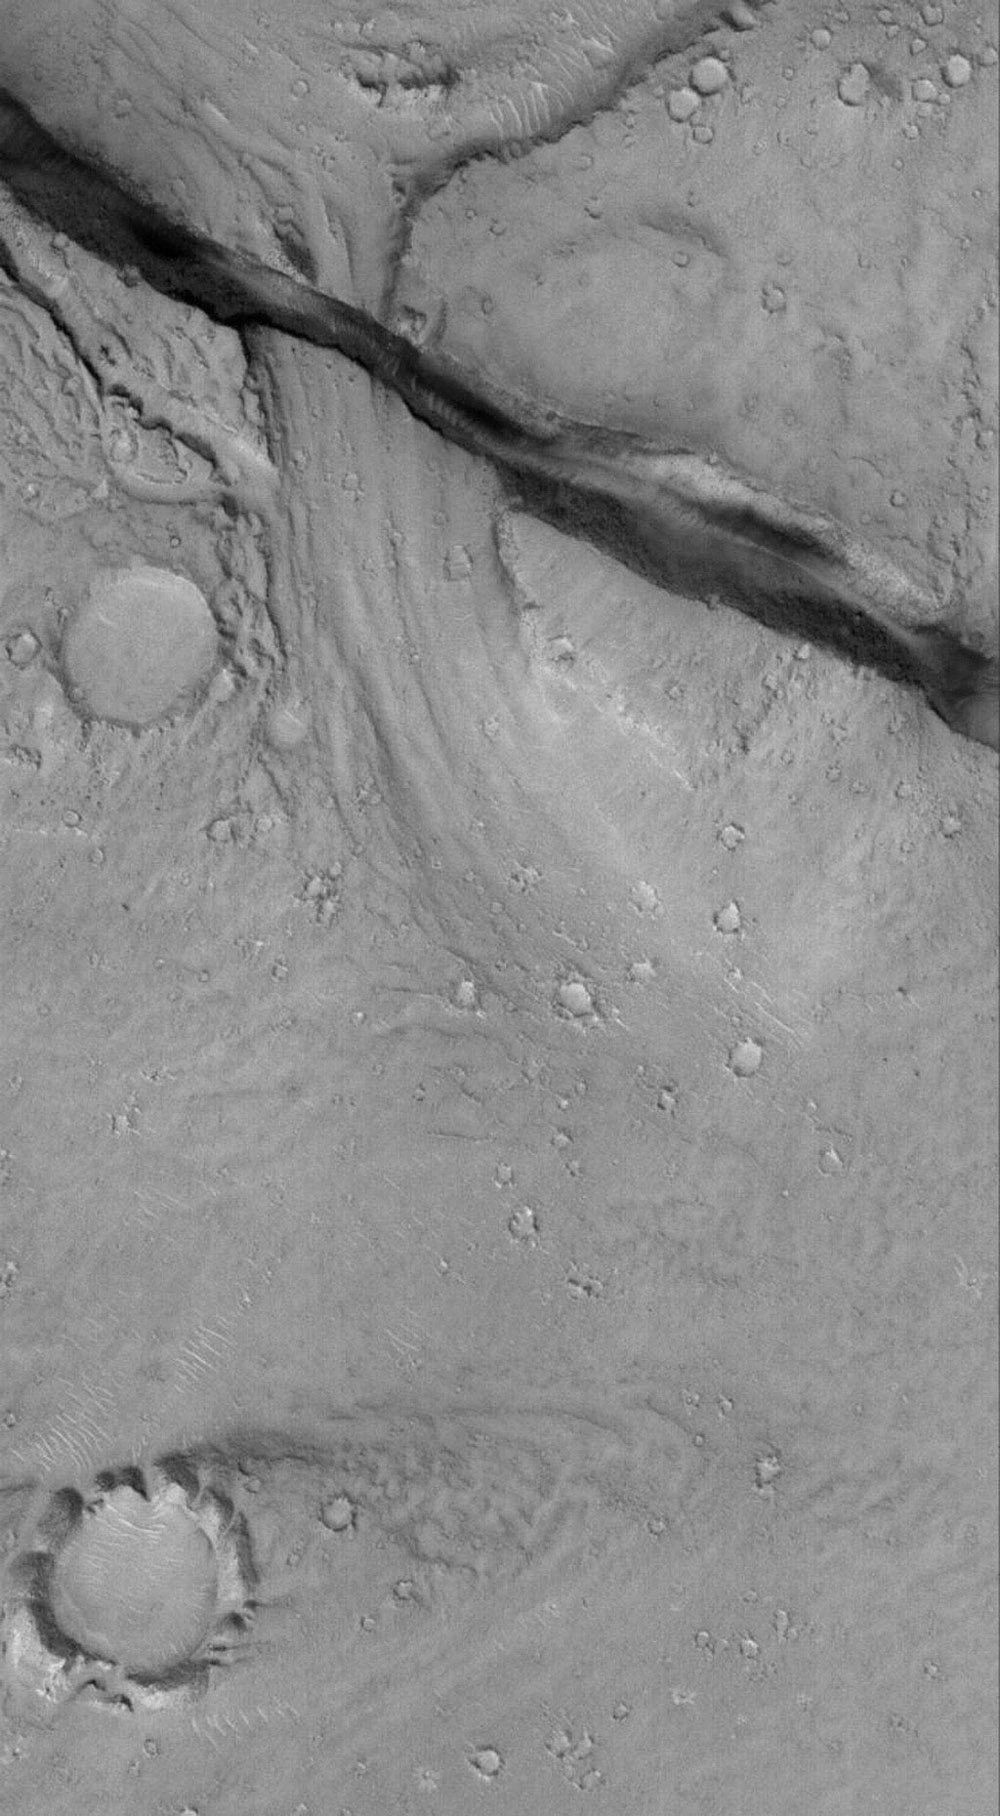 NASA's Mars Global Surveyor shows a landscape in the eastern Cerberus region on Mars scoured by catastrophic floods, and later cut by a deep, dark-walled trough. The trough is radial to the Elysium volcanic region, and formed along faults in the bedrock.